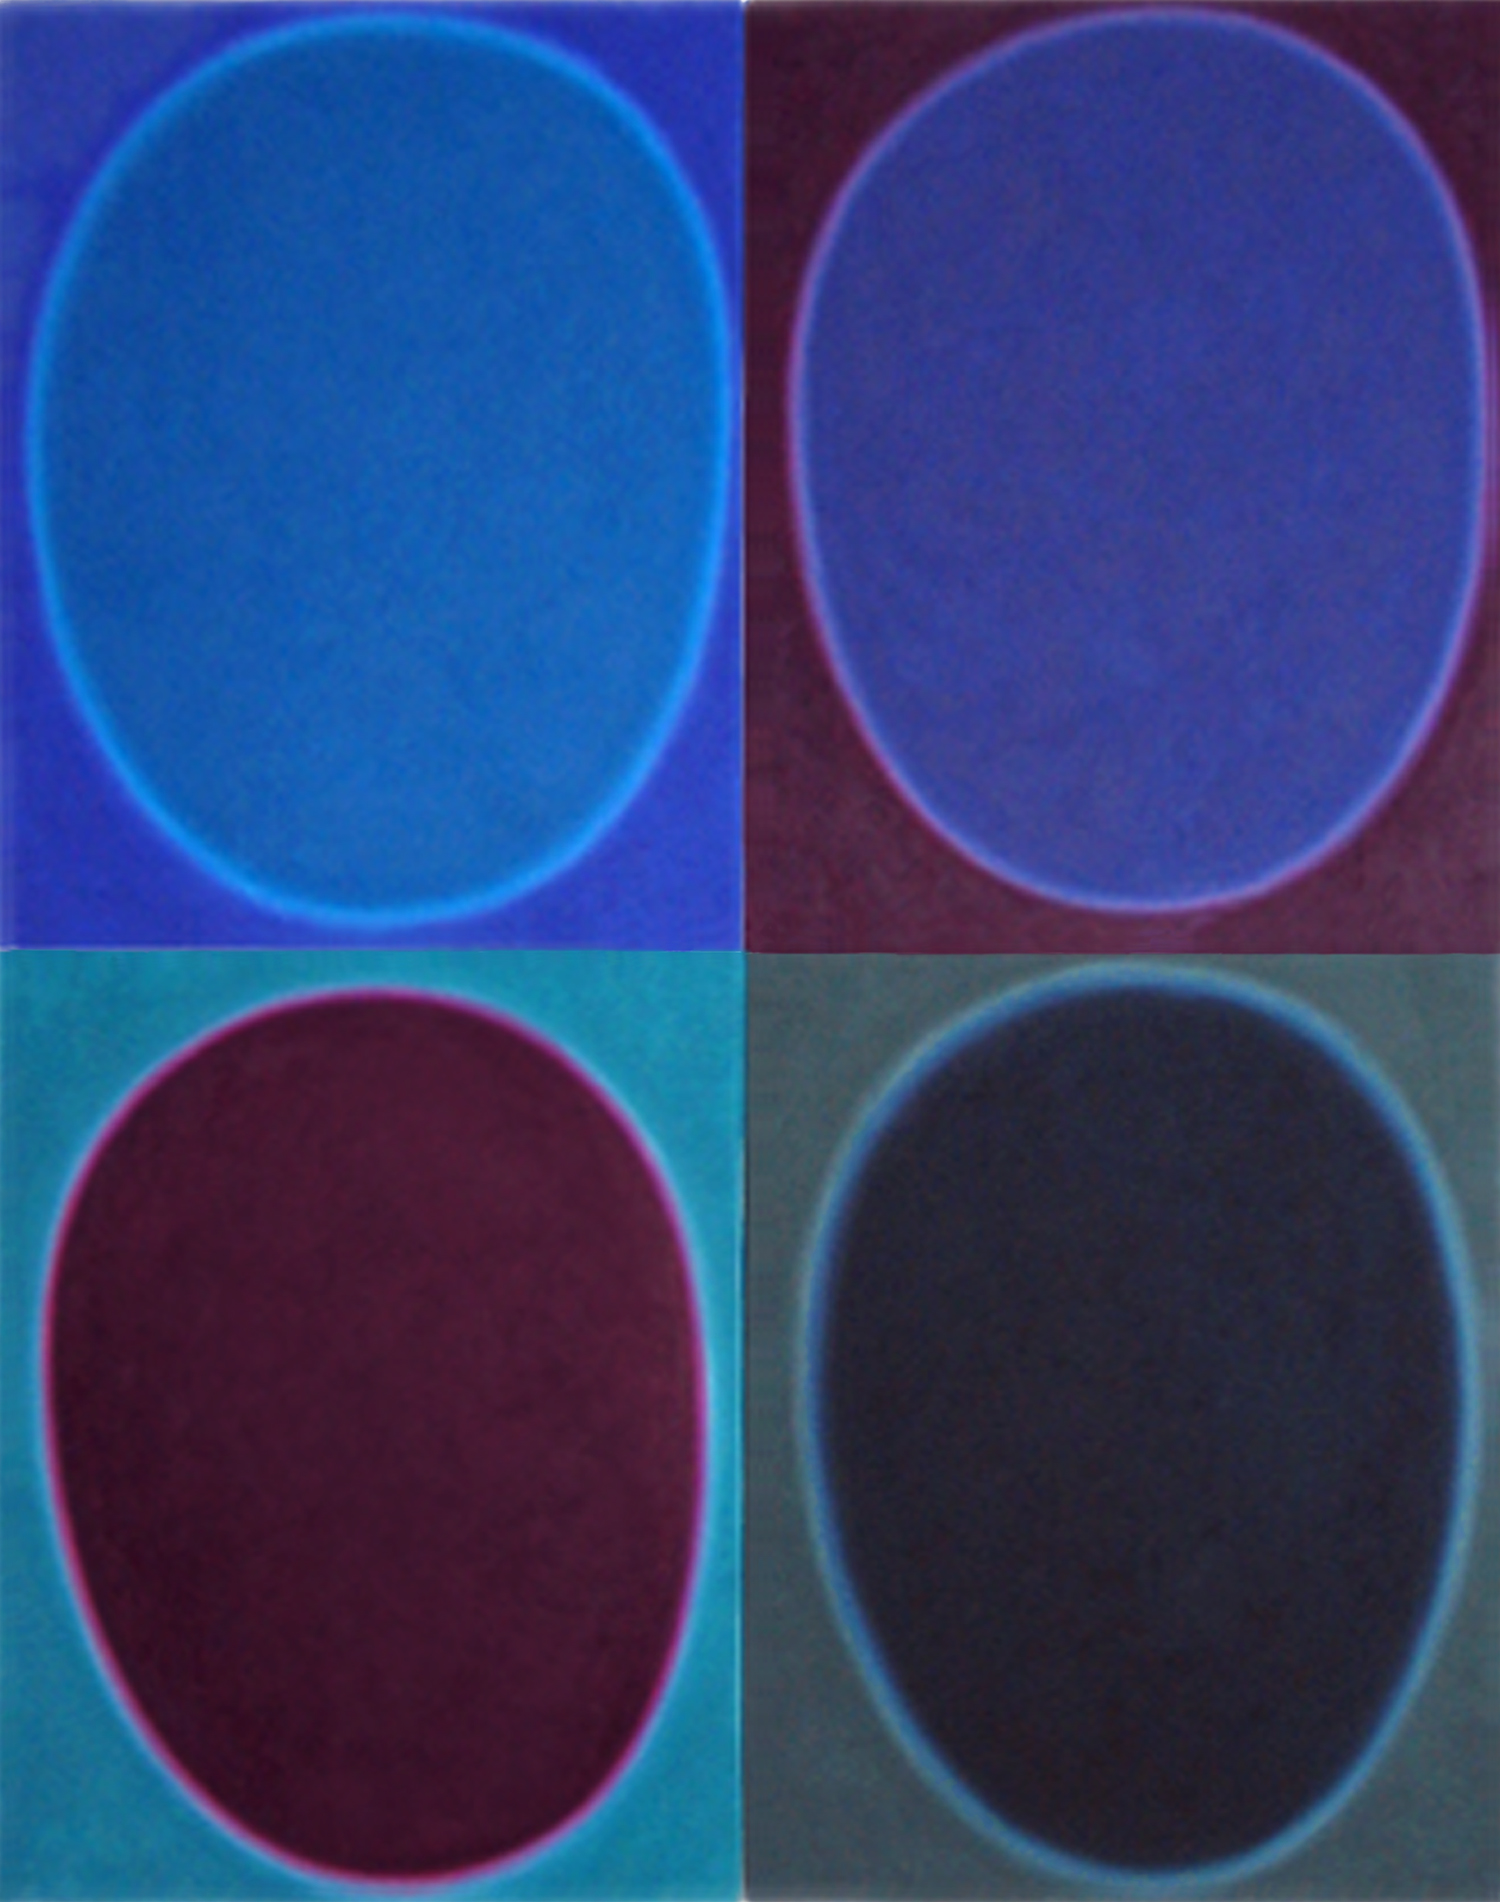 """Silent 16, oil on canvas, 2004, series of 4 panels W24"""" x H36"""" each, total format W48"""" x H72"""". Private collection."""